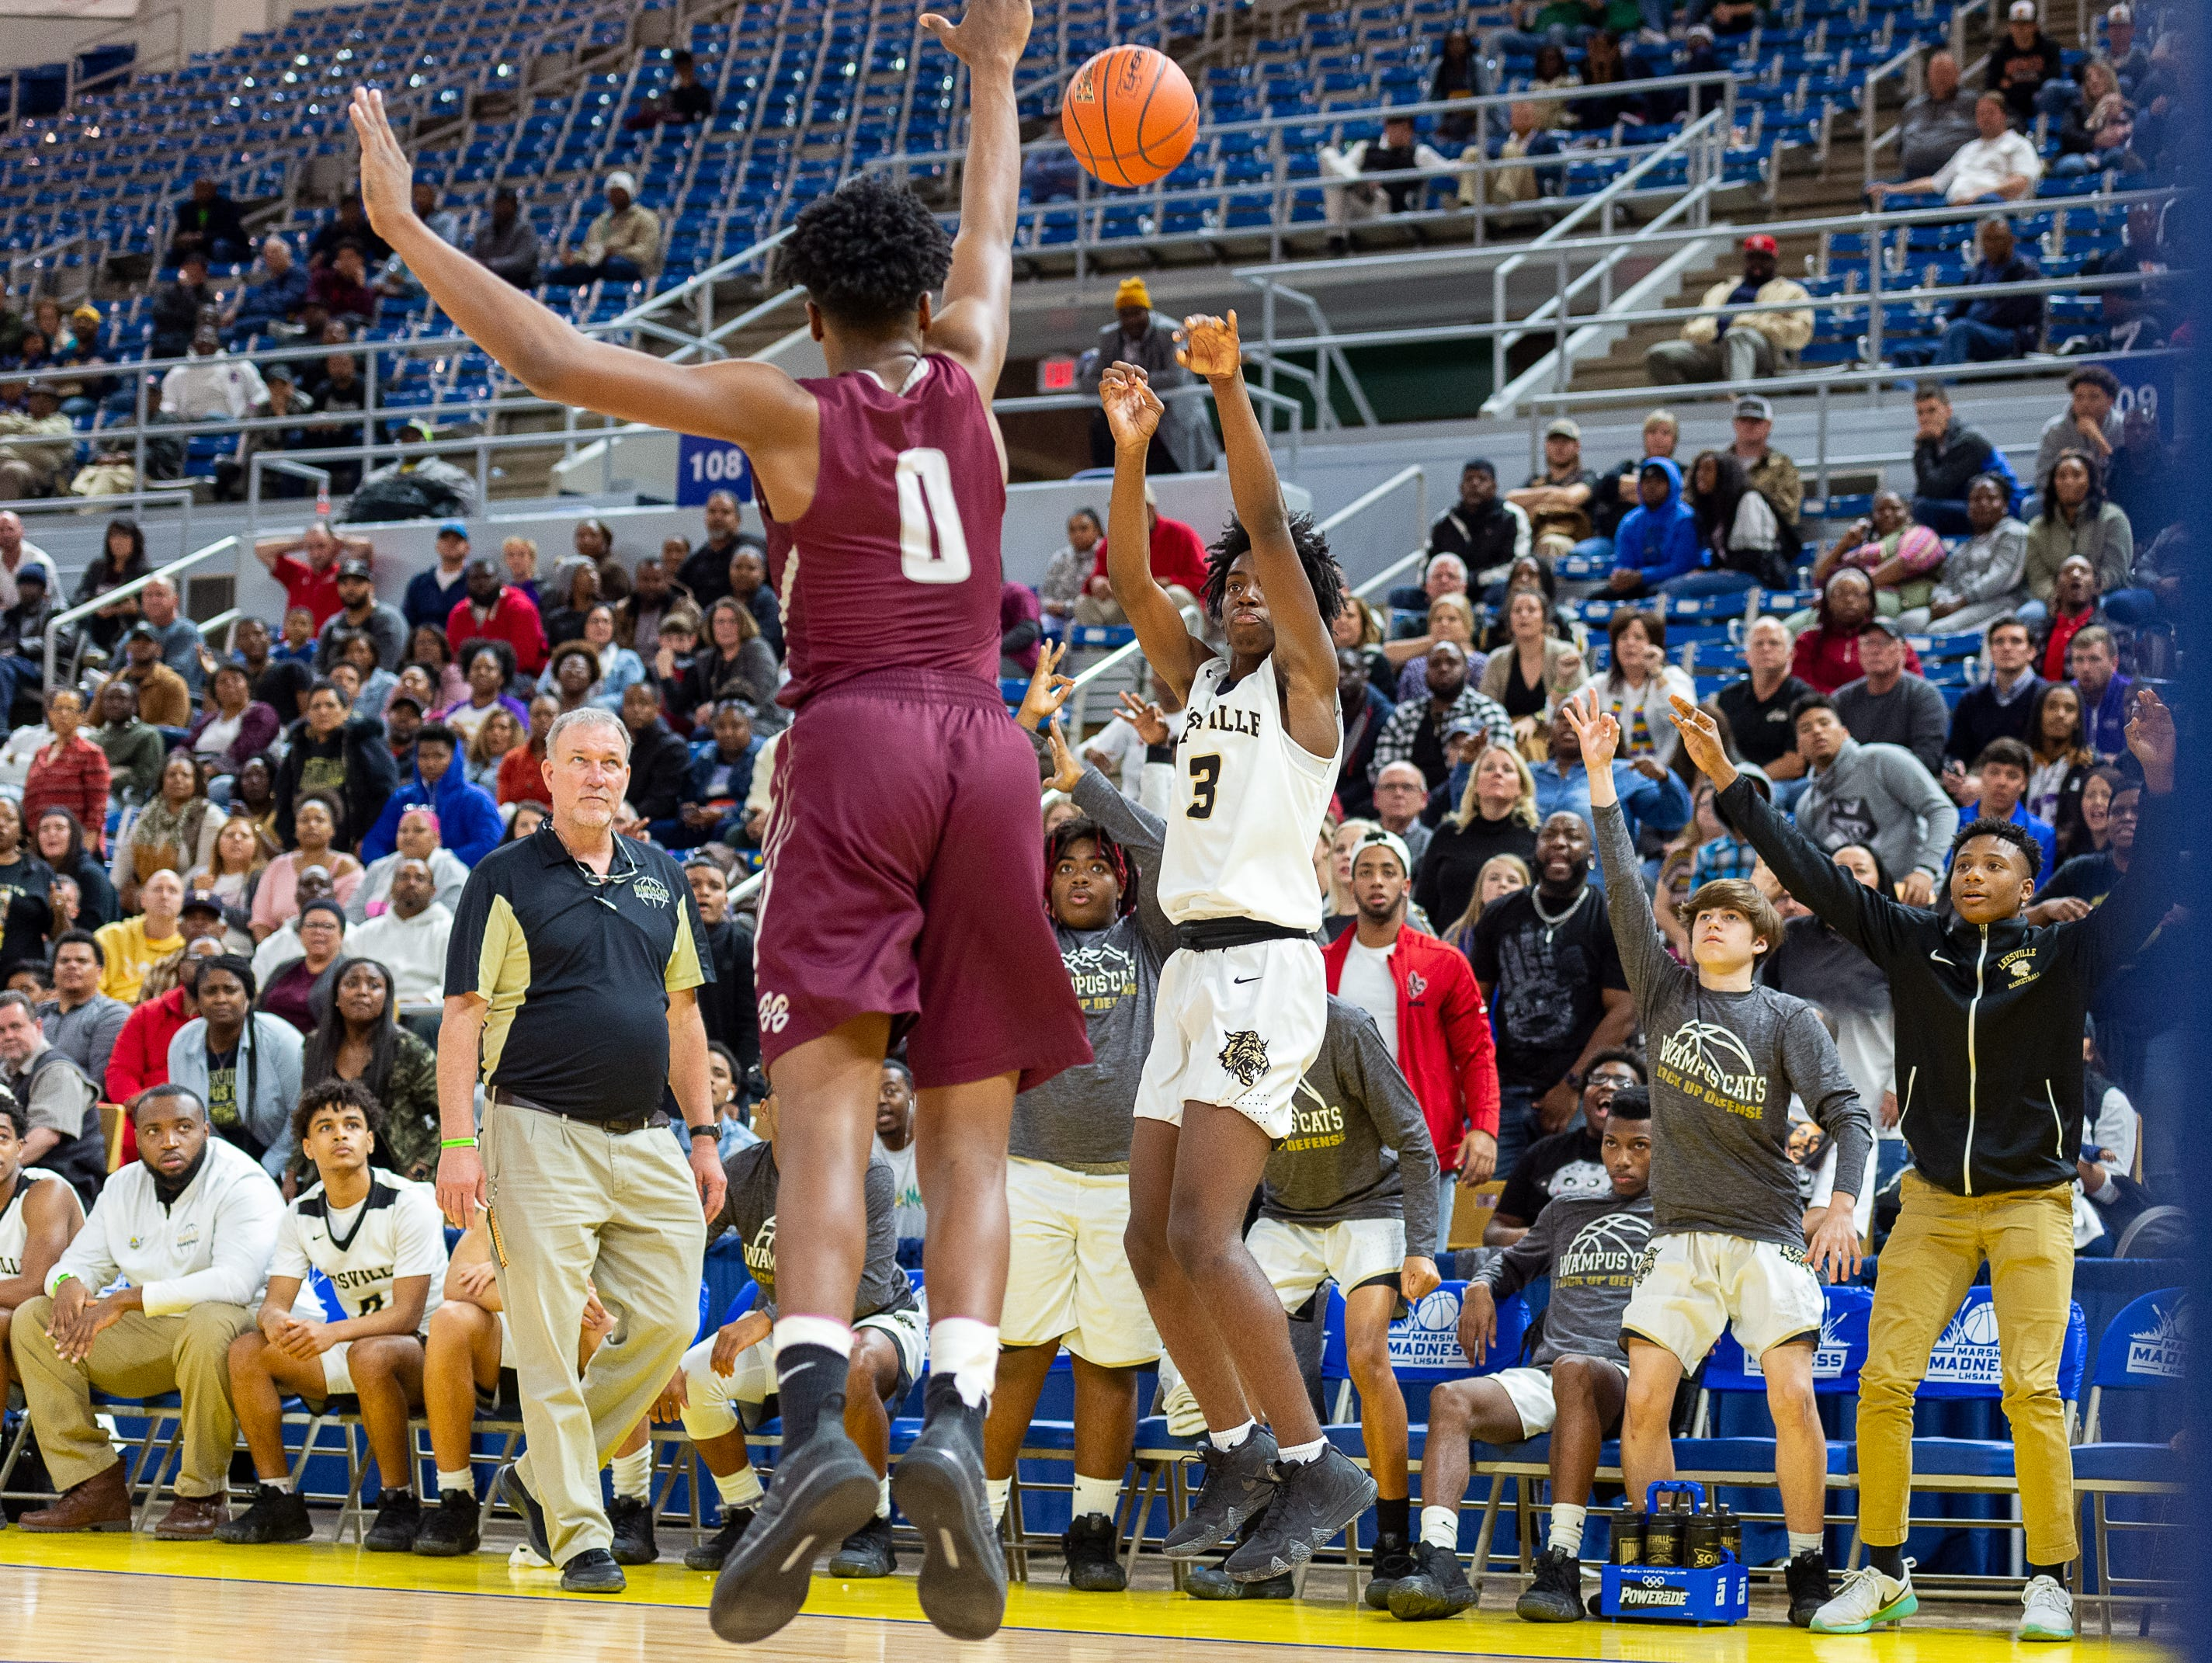 Deondre Wilson takes a shot as Breaux Bridge takes on Leesville in the semi final round of the LHSAA Basketball Championship Tournament. Tuesday, March 5, 2019.